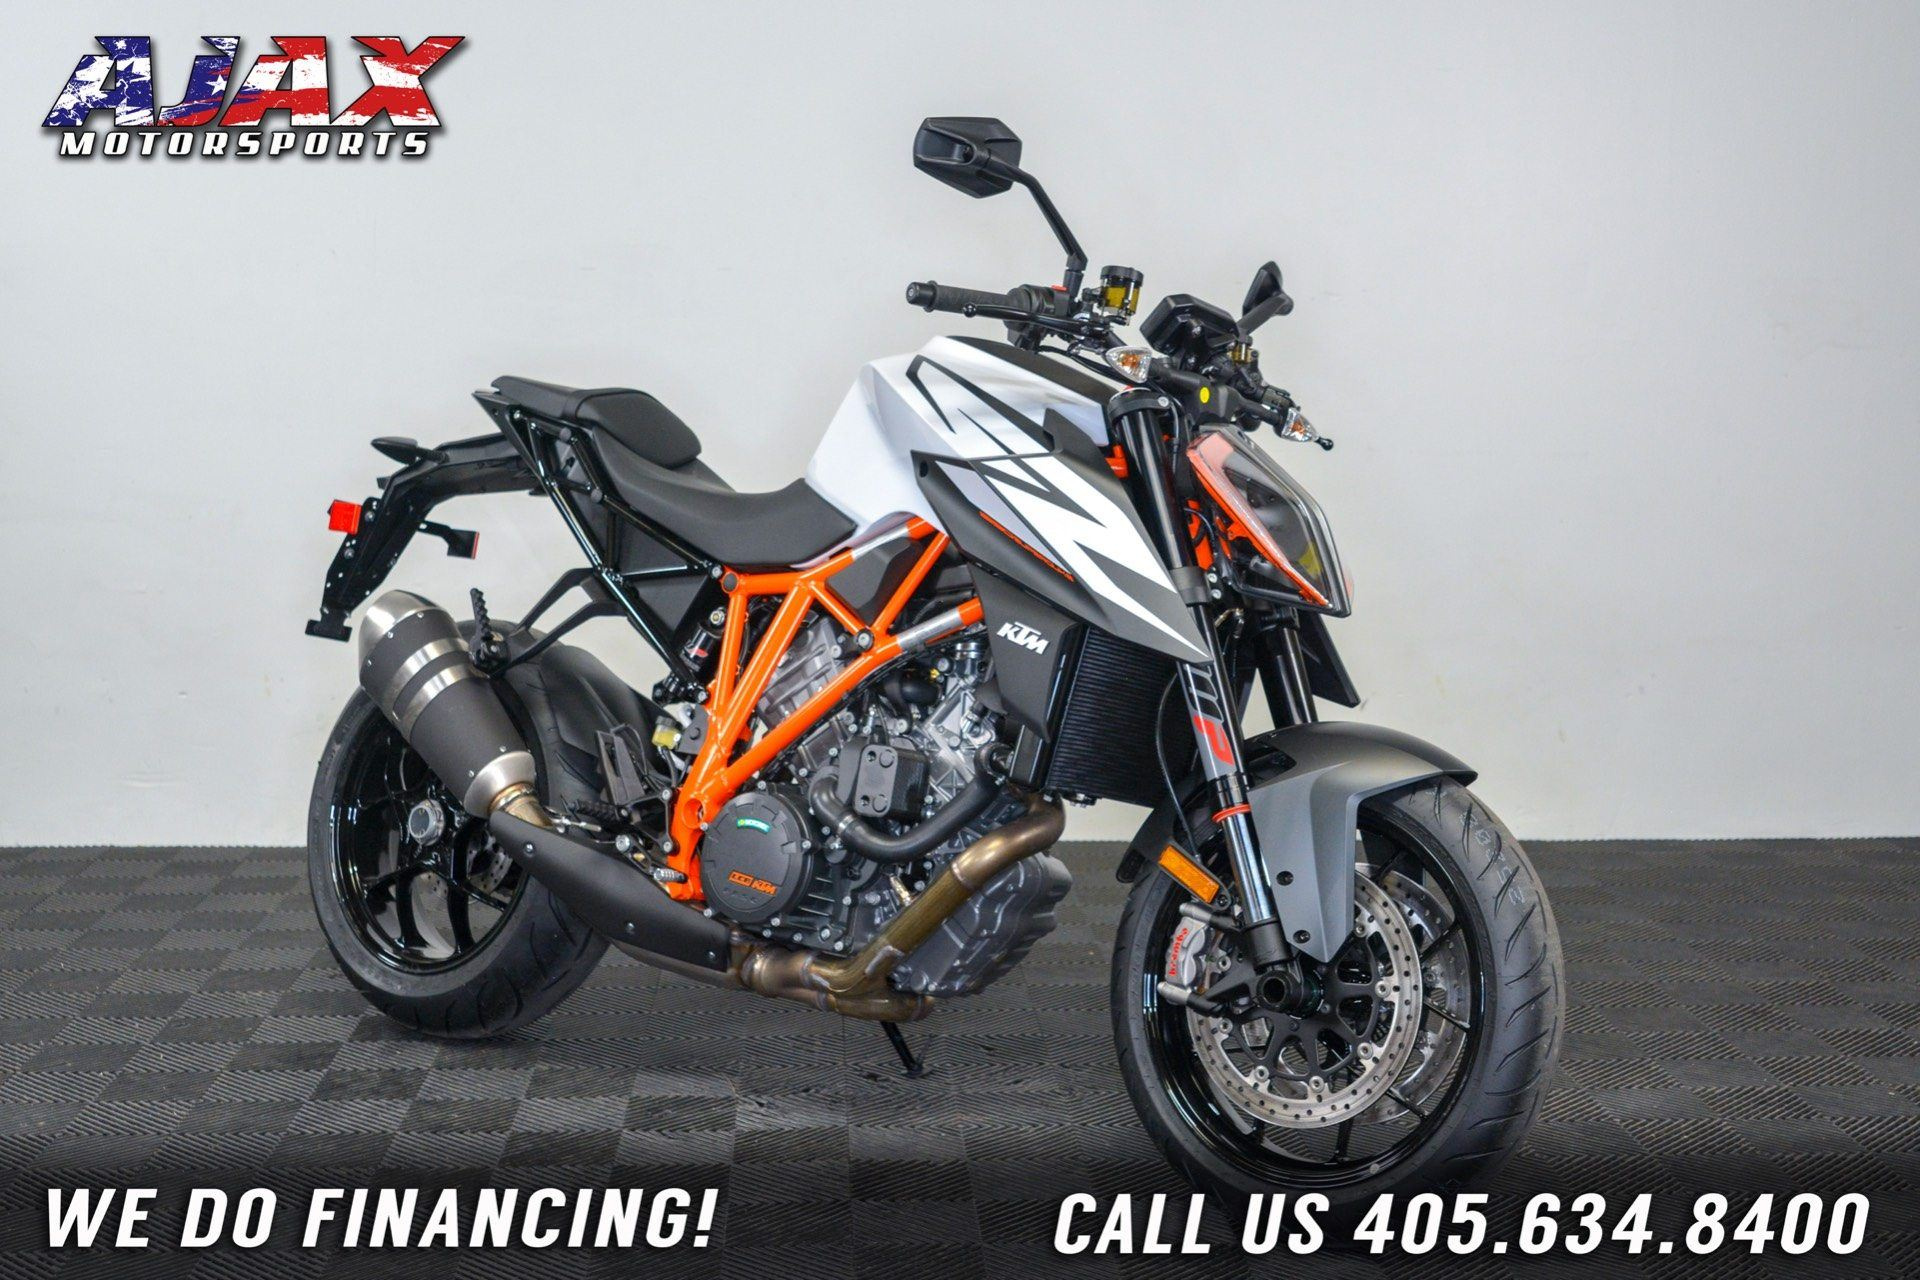 2019 KTM 1290 Super Duke R for sale 2796